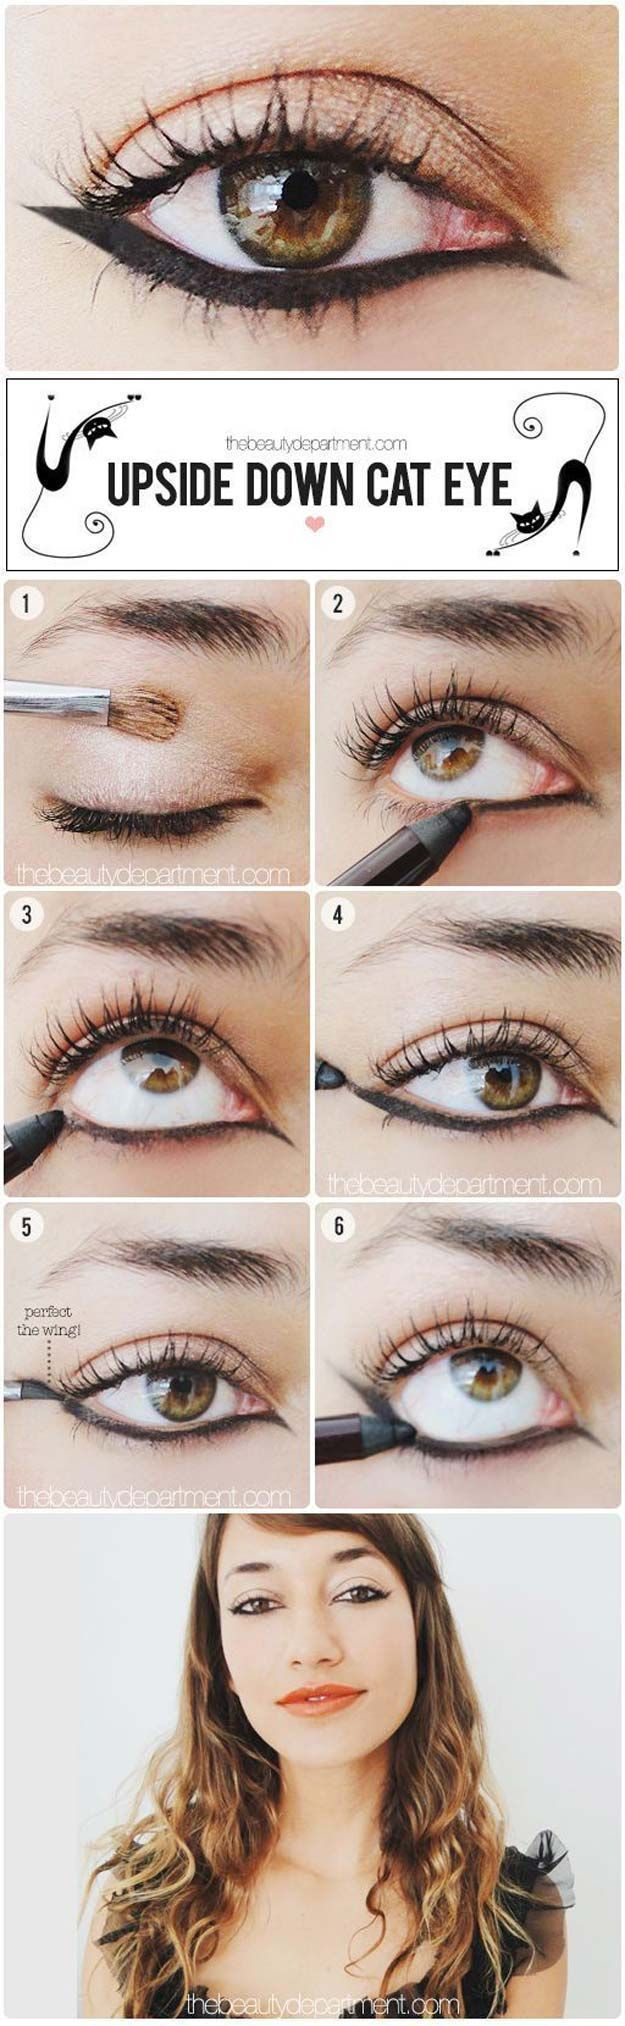 Winged Eyeliner Tutorials - Tutorial, Upside Down Cat Eye- Easy Step By Step Tutorials For Beginners and Hacks Using Tape and a Spoon, Liquid Liner, Thing Pencil Tricks and Awesome Guides for Hooded Eyes - Short Video Tutorial for Perfect Simple Dramatic Looks - thegoddess.com/winged-eyeliner-tutorials #easyhairstylesforbeginners #makeuplooksstepbystep #wingedlinersimple